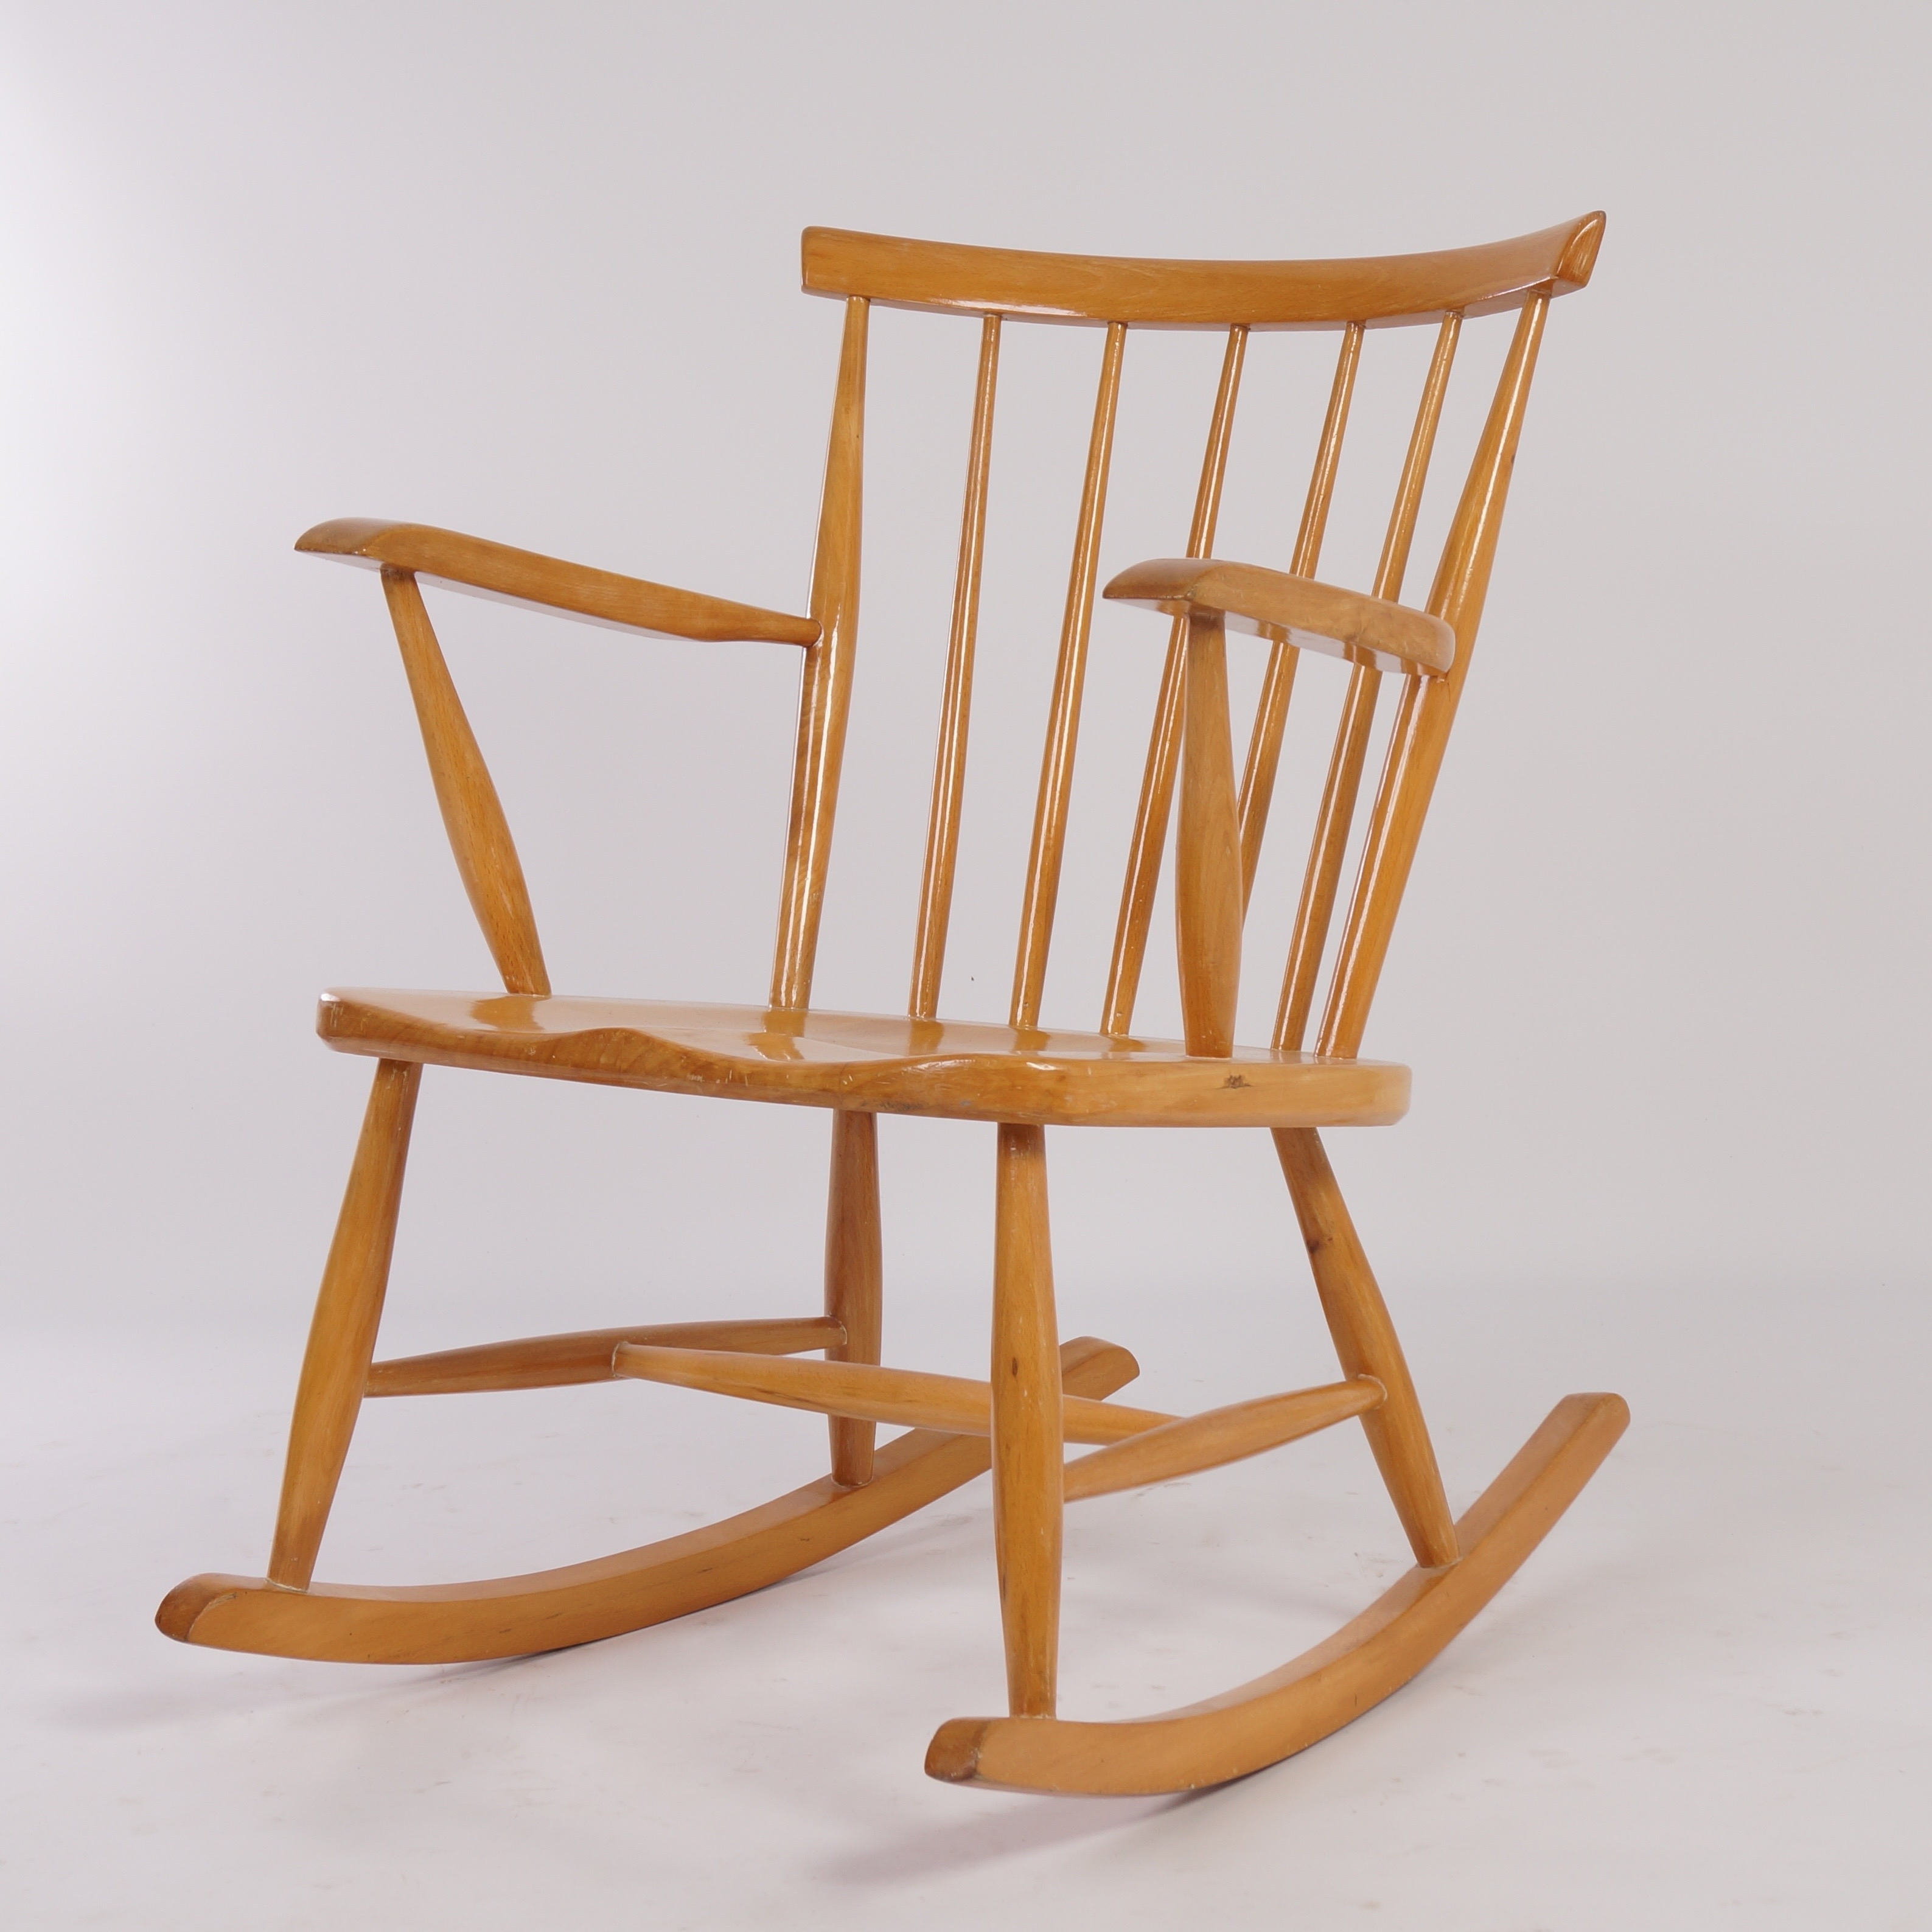 Vintage | Vintage Birch Wood Rocking Chair From The 60S | Ztijl Throughout Retro Rocking Chairs (View 13 of 15)